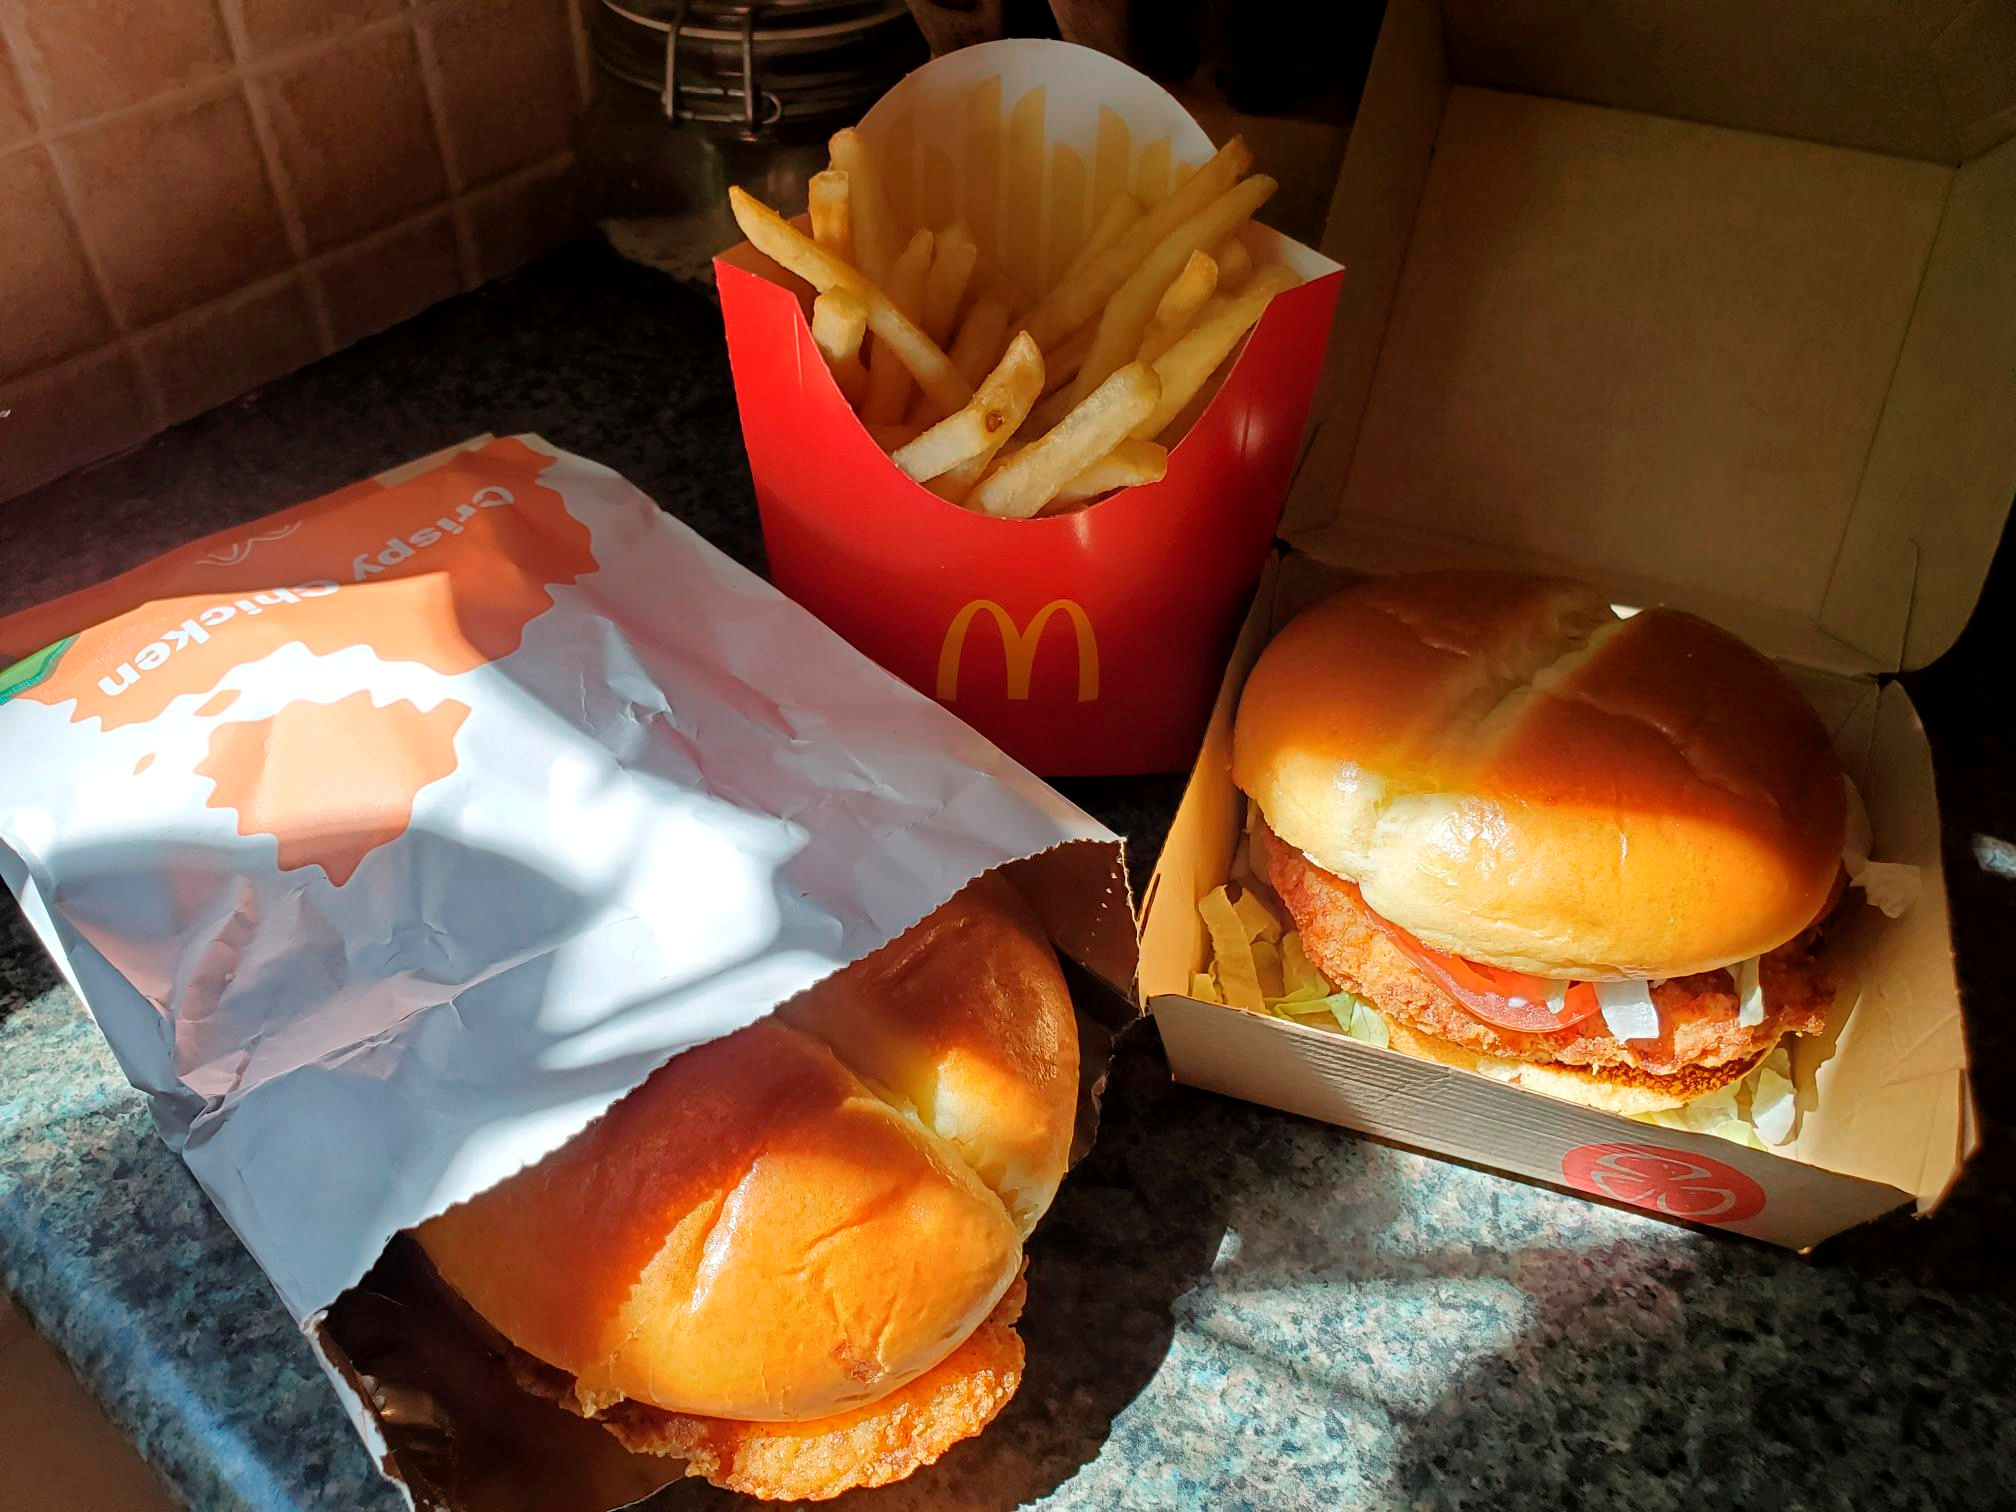 McDonald's Crispy Chicken Sandwiches and fries are pictured in New York, U.S. March 30, 2021. Picture taken March 30, 2021. REUTERS/Hilary Russ